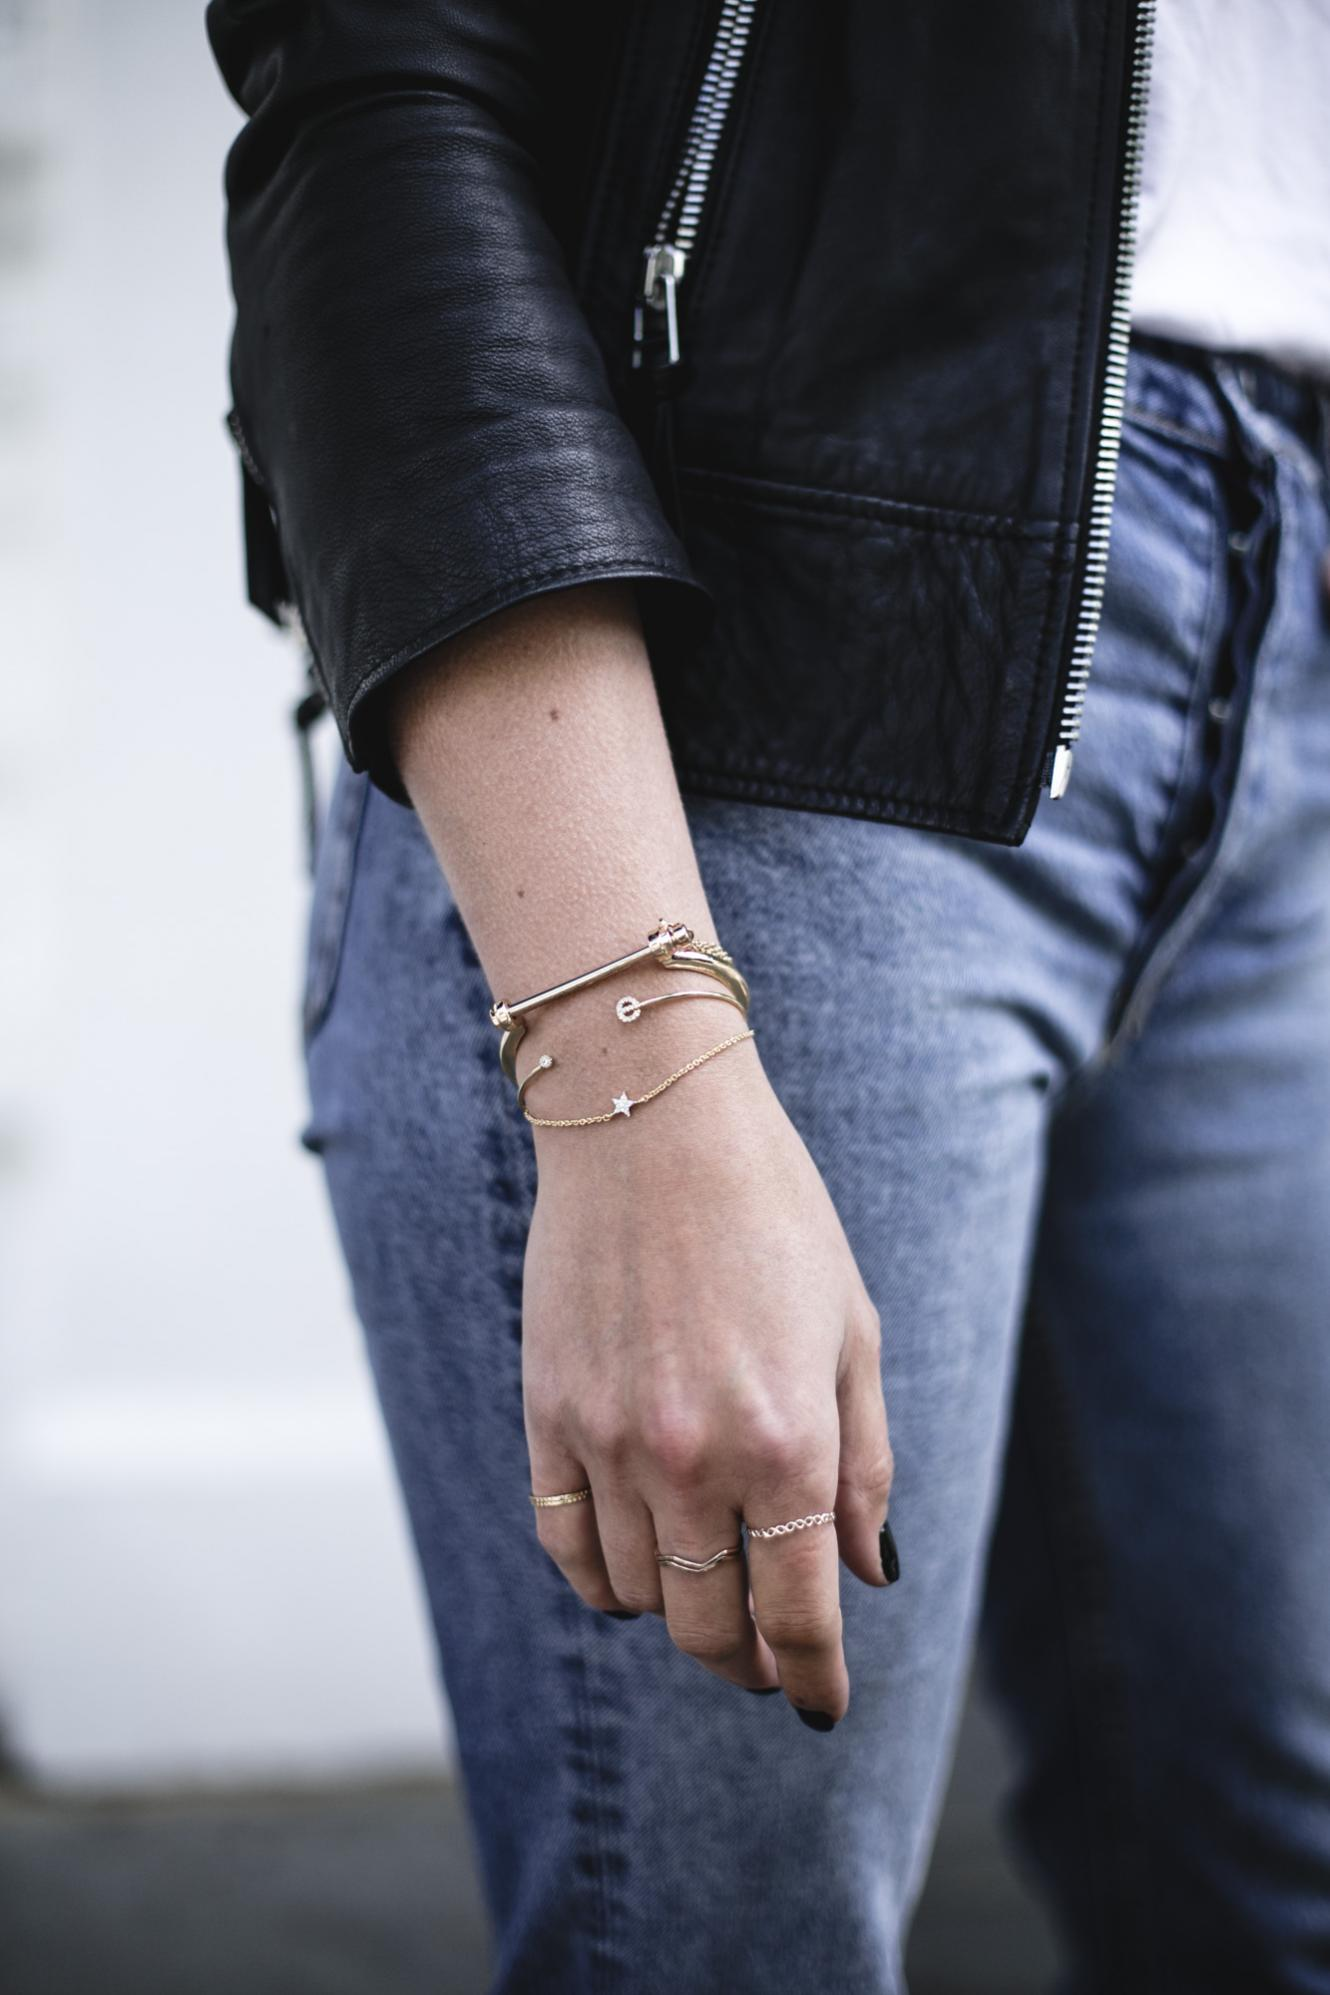 Emma Hill wears gold bracelets, black biker jacket and jeans